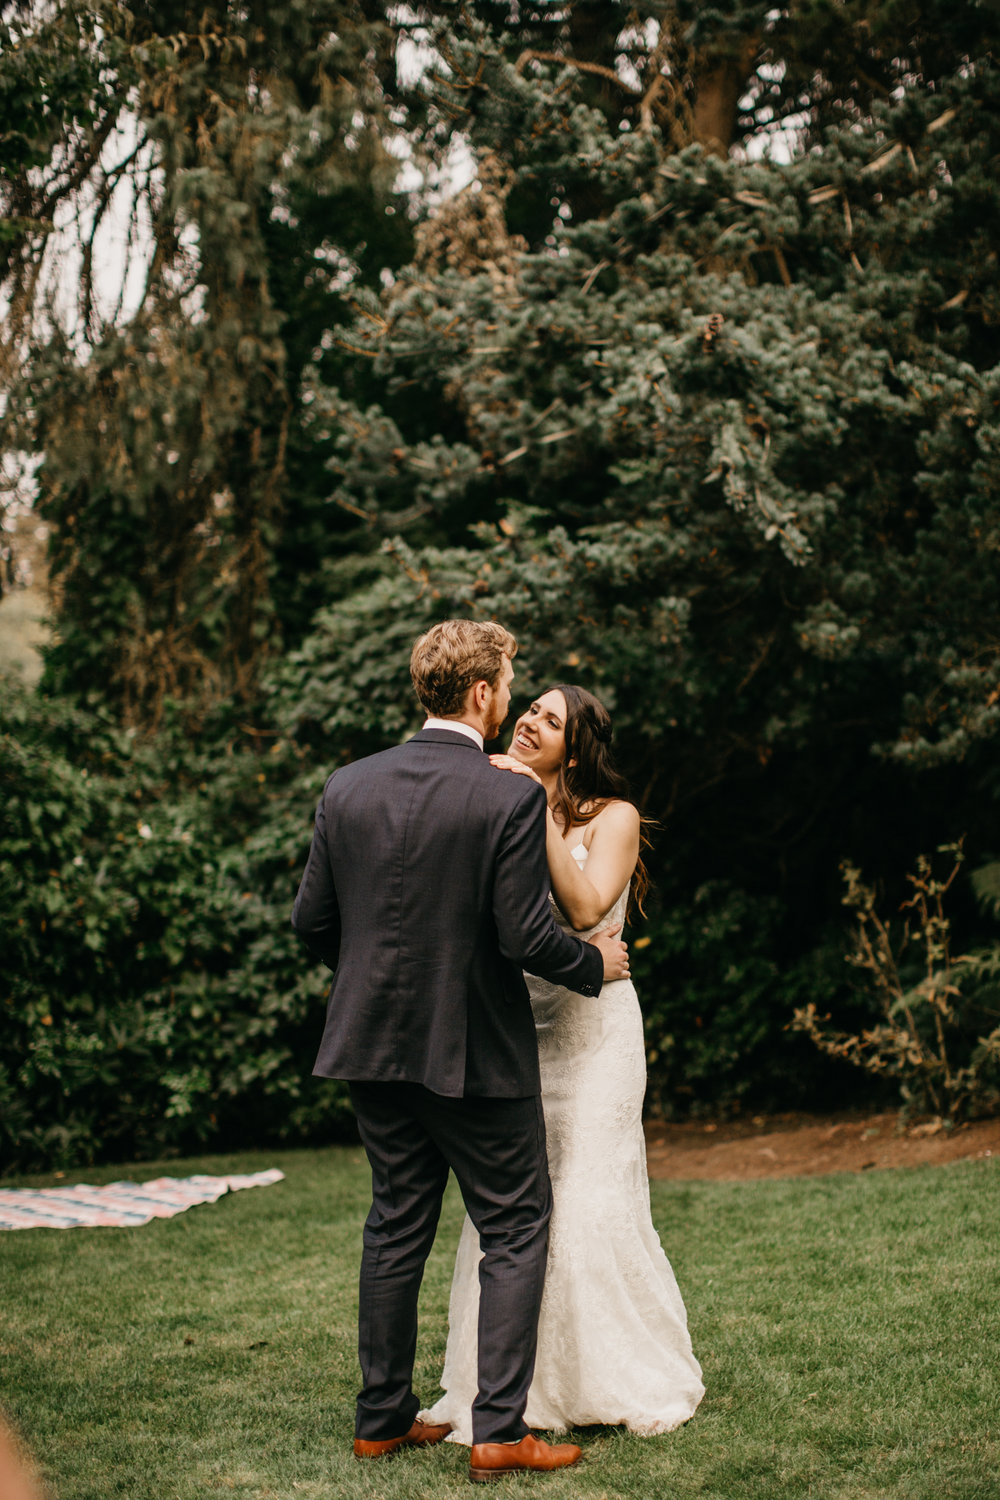 Max&SamPhoto_Seattle Wedding Photographer_Bellevue Robinswood House_043.jpg